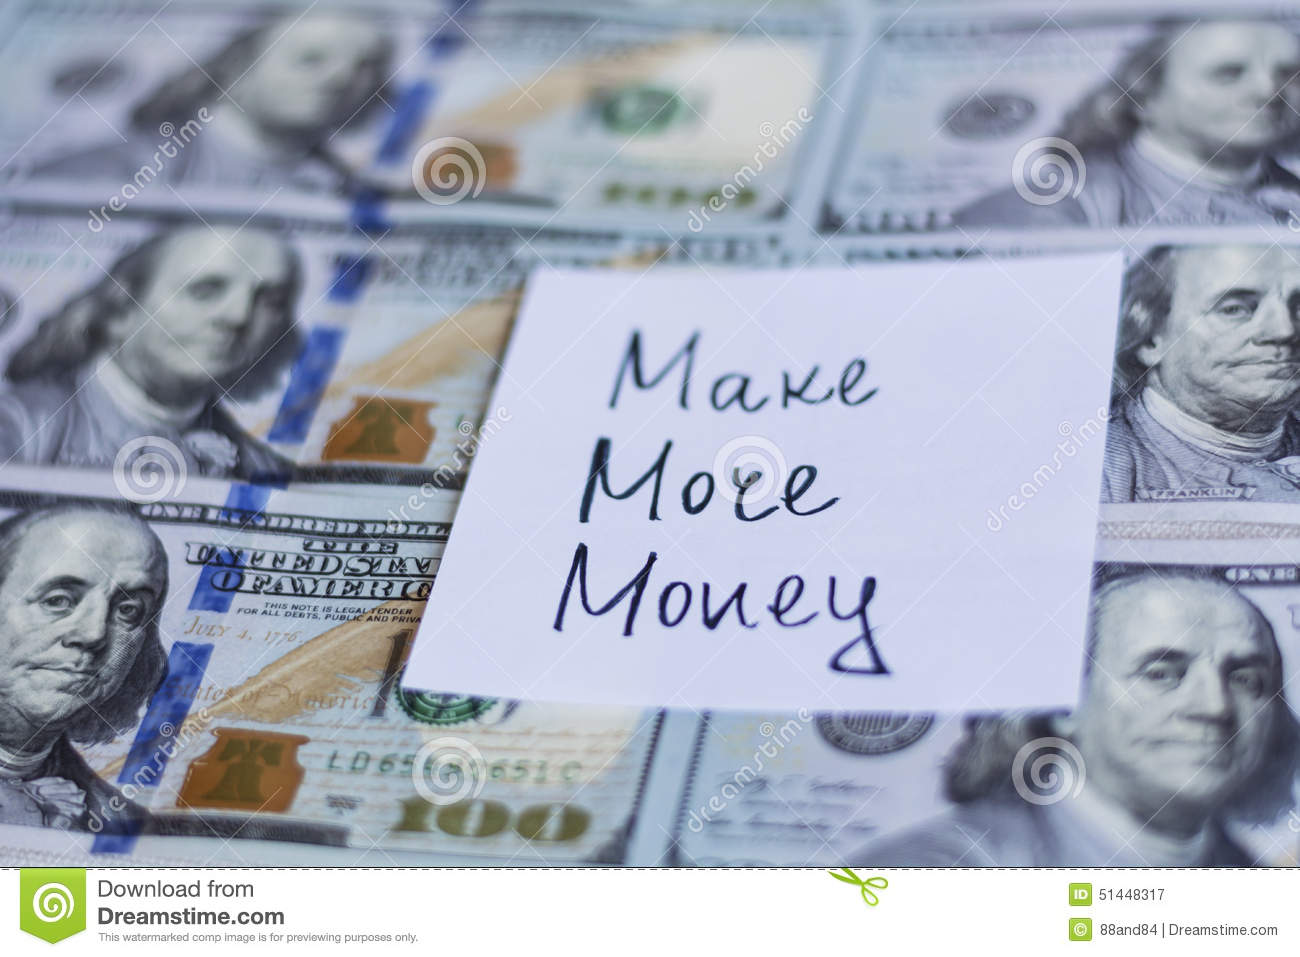 earn money write essays Anytime you need choose essay writers who suit your expectations and  budget and get original papers  have your academic paper written by a  professional writer just place an  security, confidentiality, and money back  guaranteed.